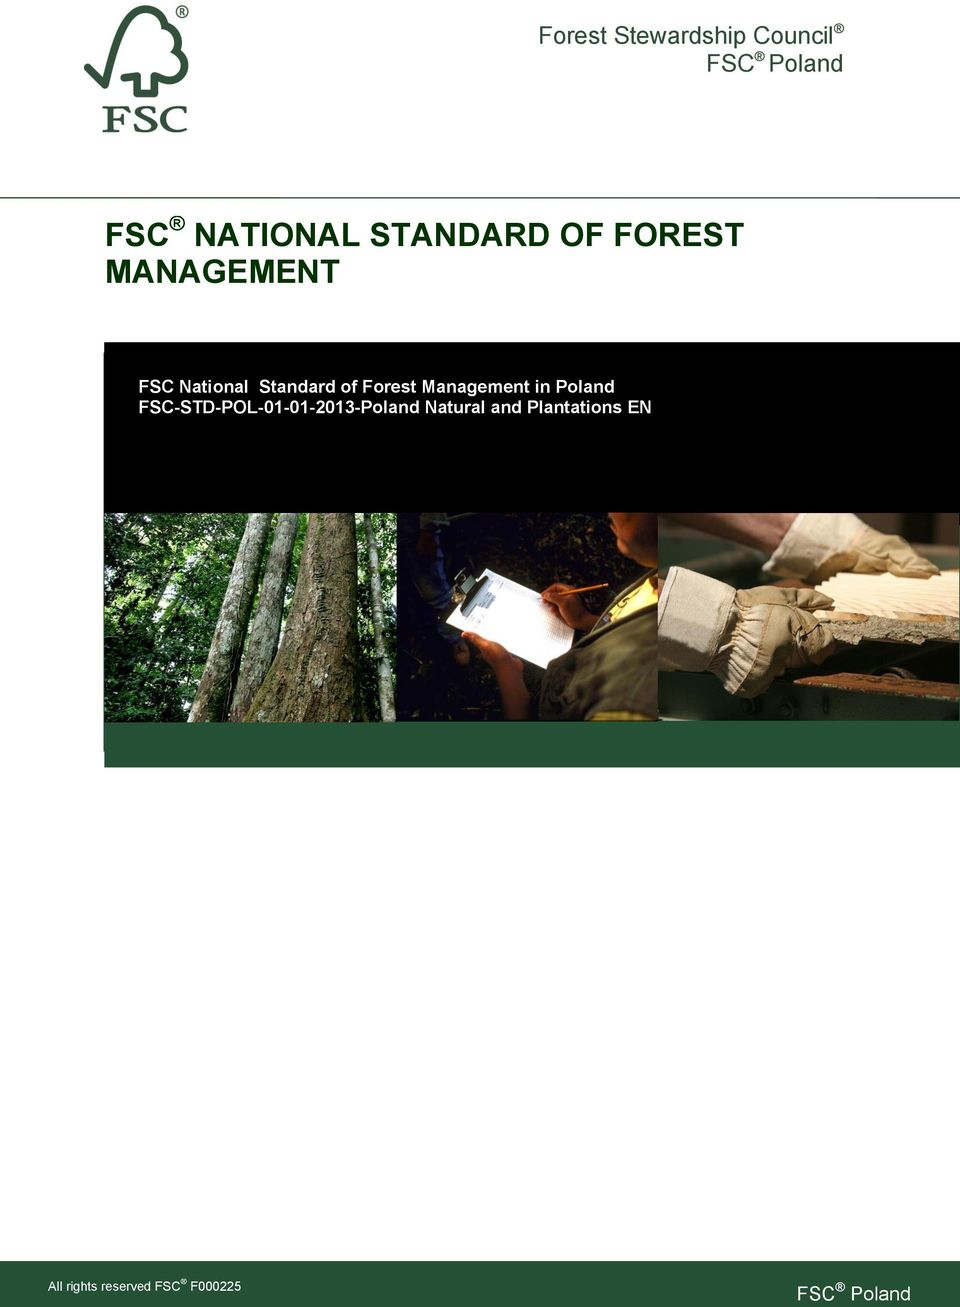 Standard of Forest Management in Poland